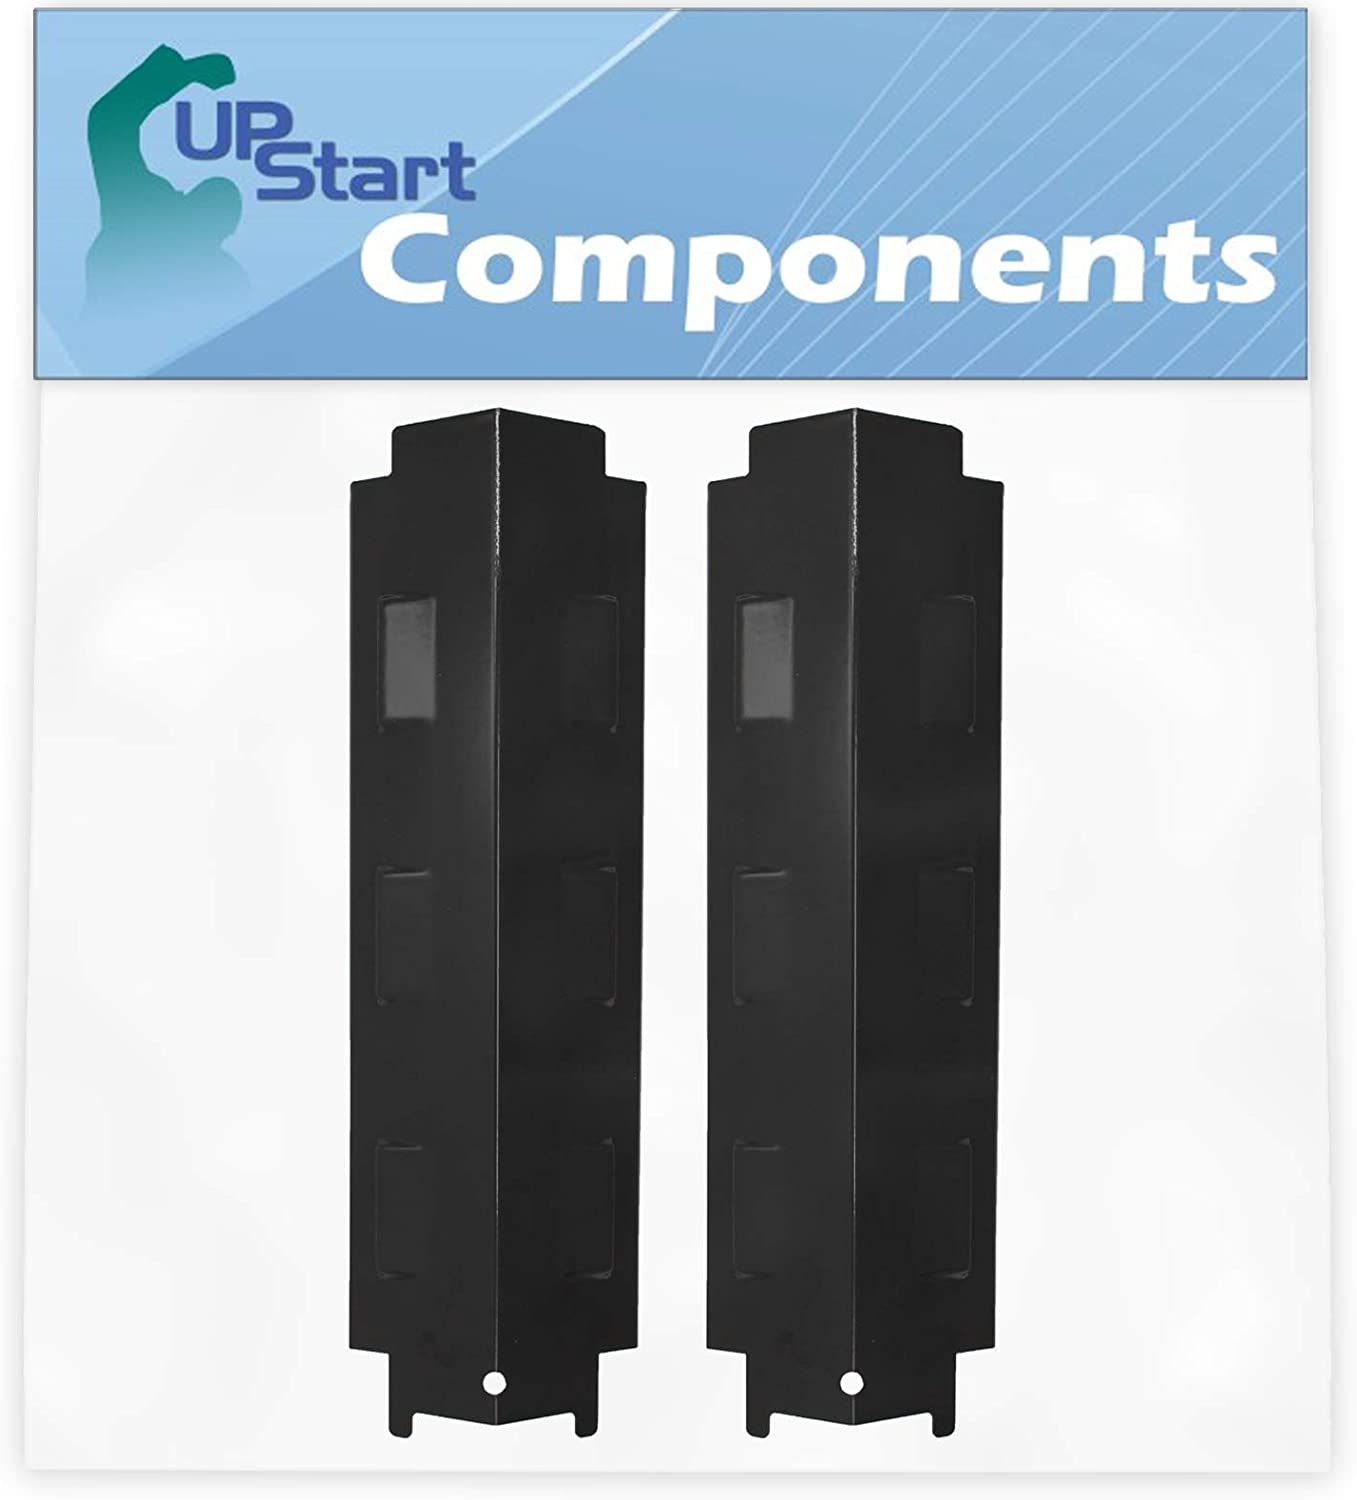 2-Pack BBQ Grill Heat Max 53% OFF Shield Plate for Max 56% OFF Parts Ke Replacement Tent